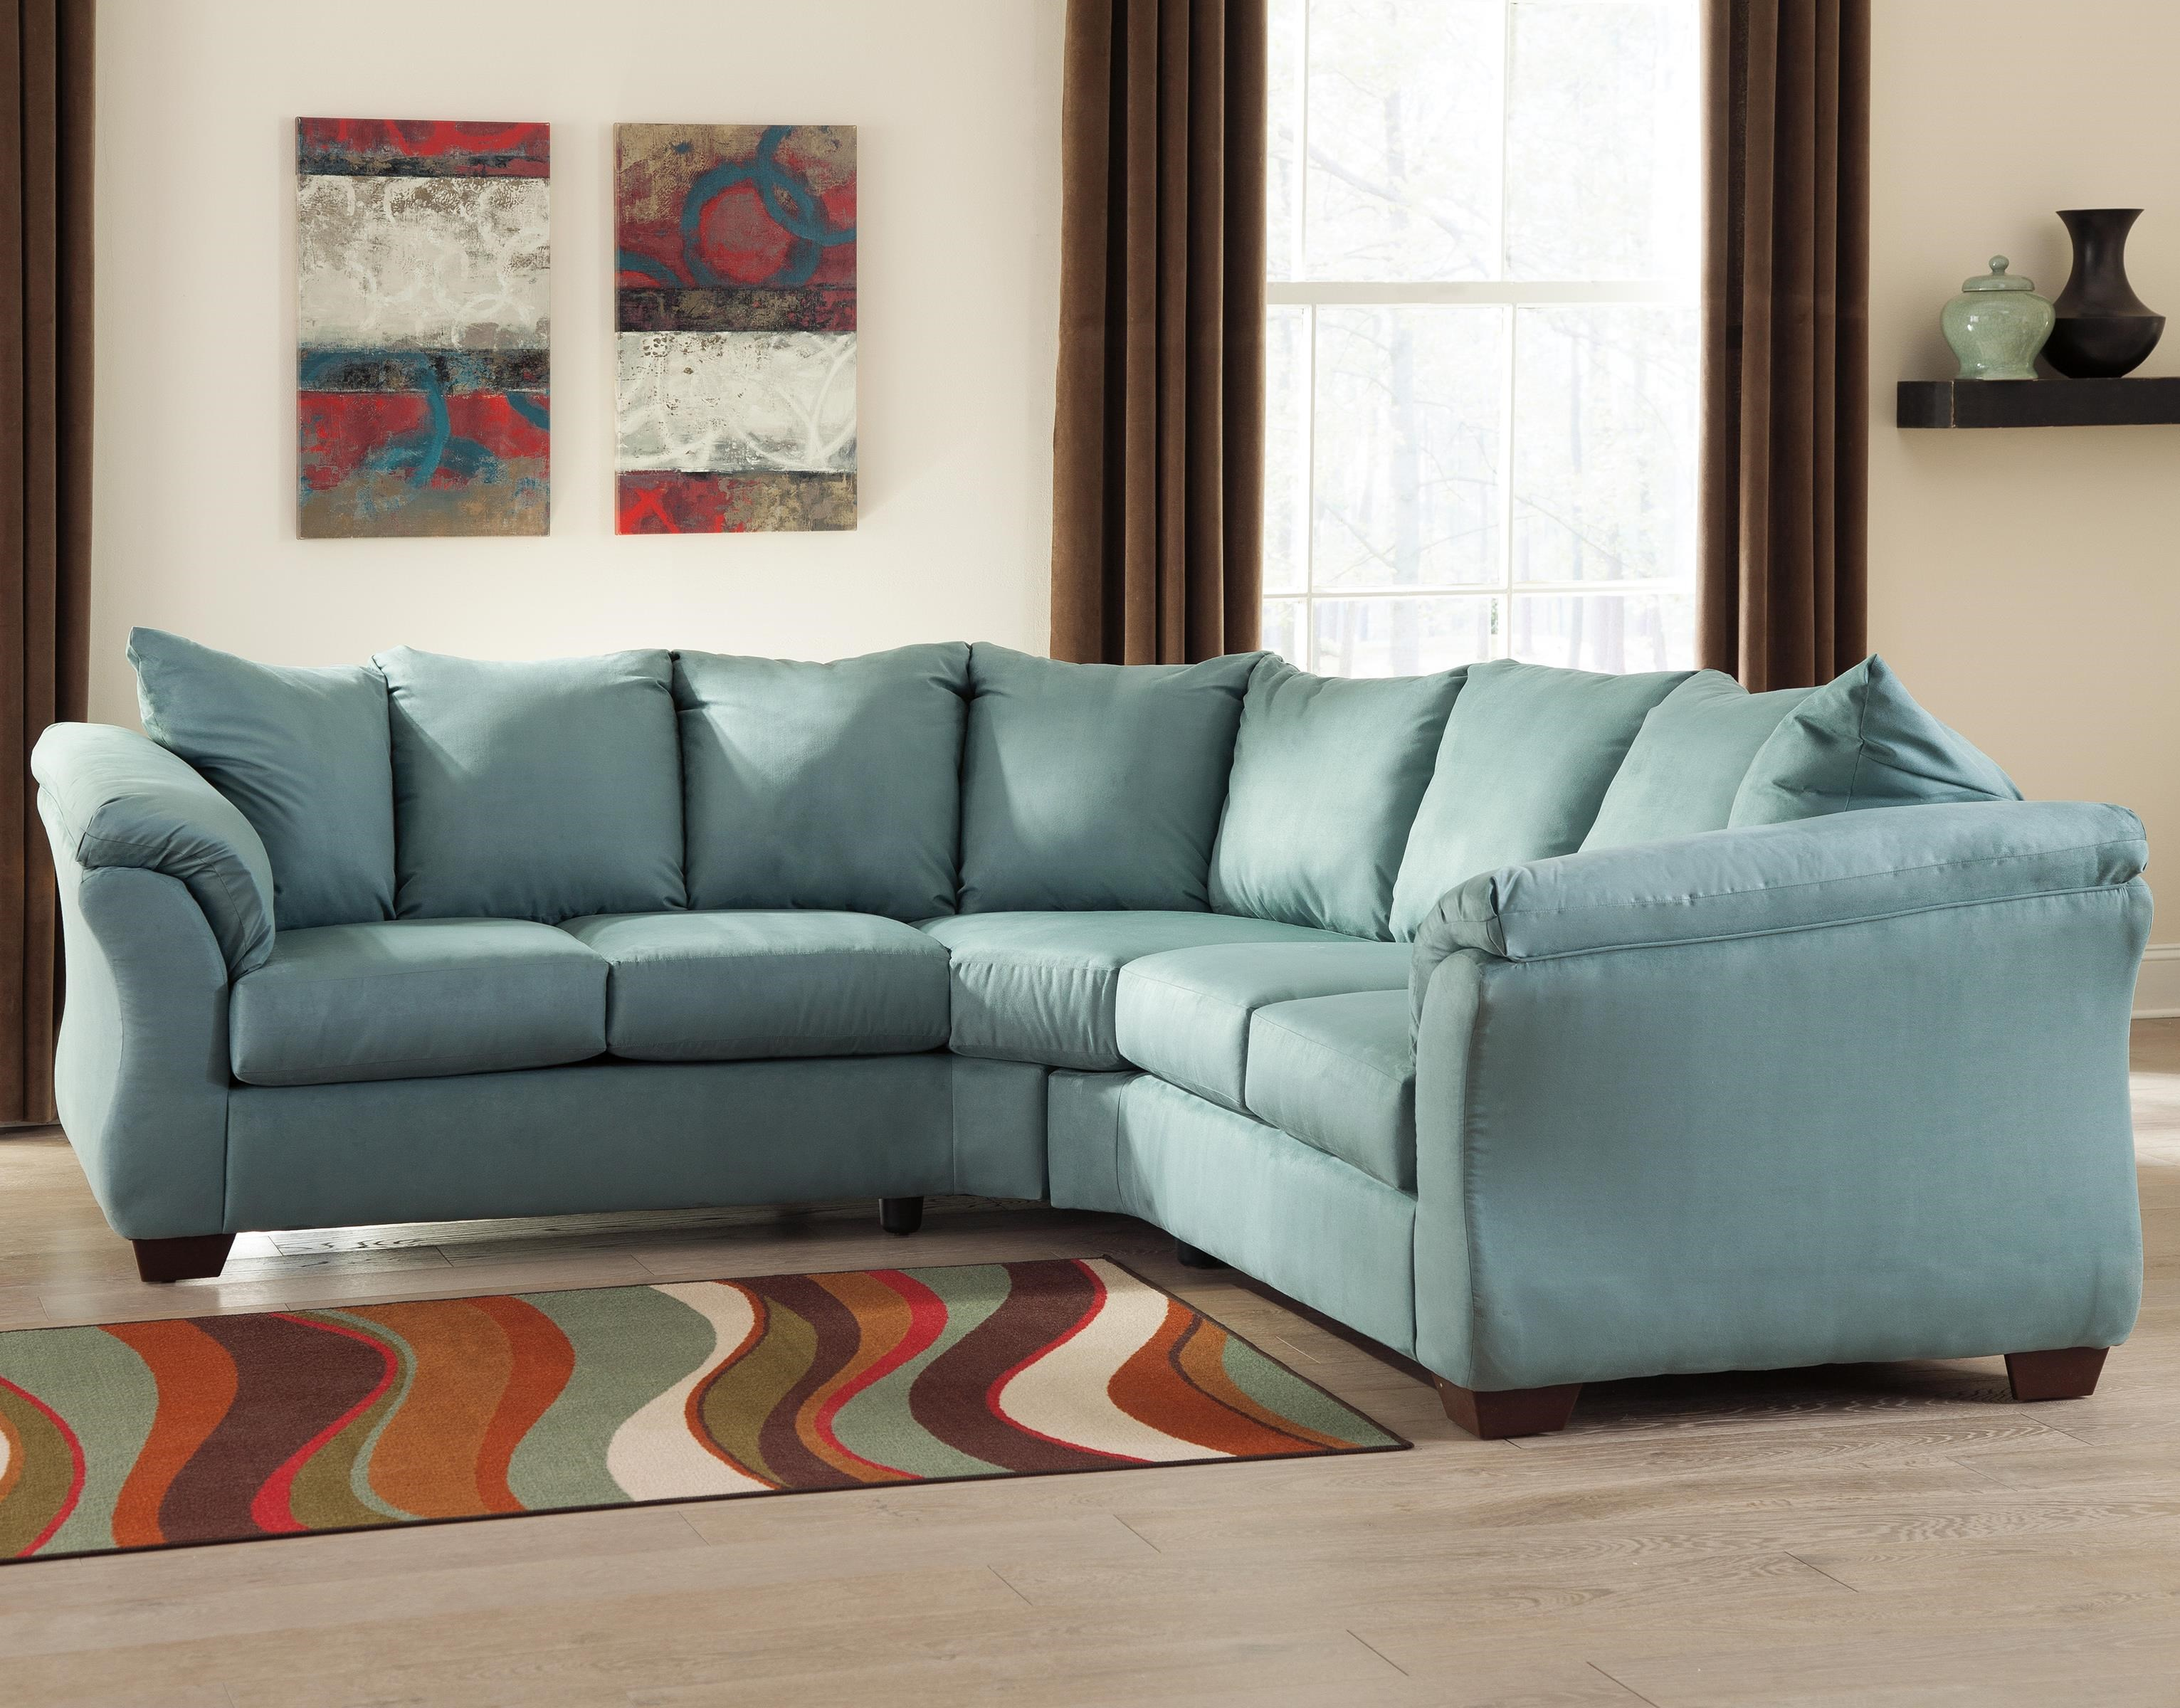 Beau Signature Design By Ashley Darcy   SkySectional Sofa ...